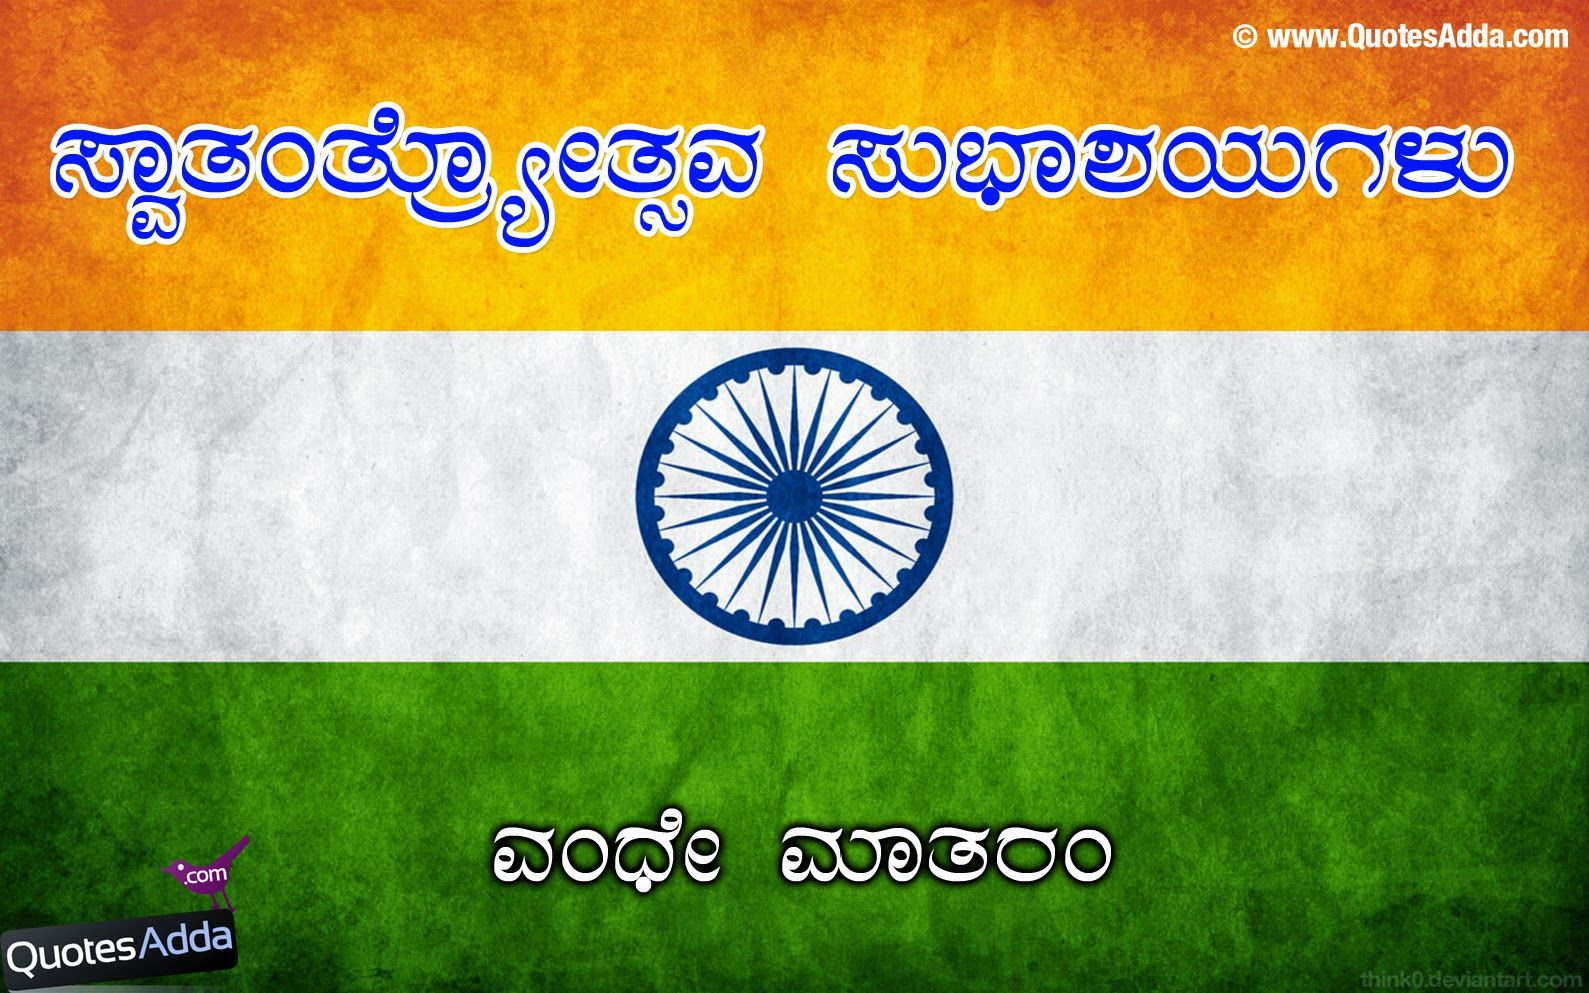 Happy India S Independence Day Kannada Greeting Quotesadda Com Telugu Quote Tamil Hindi Indian Flag Image Culture And Tradition Essay In